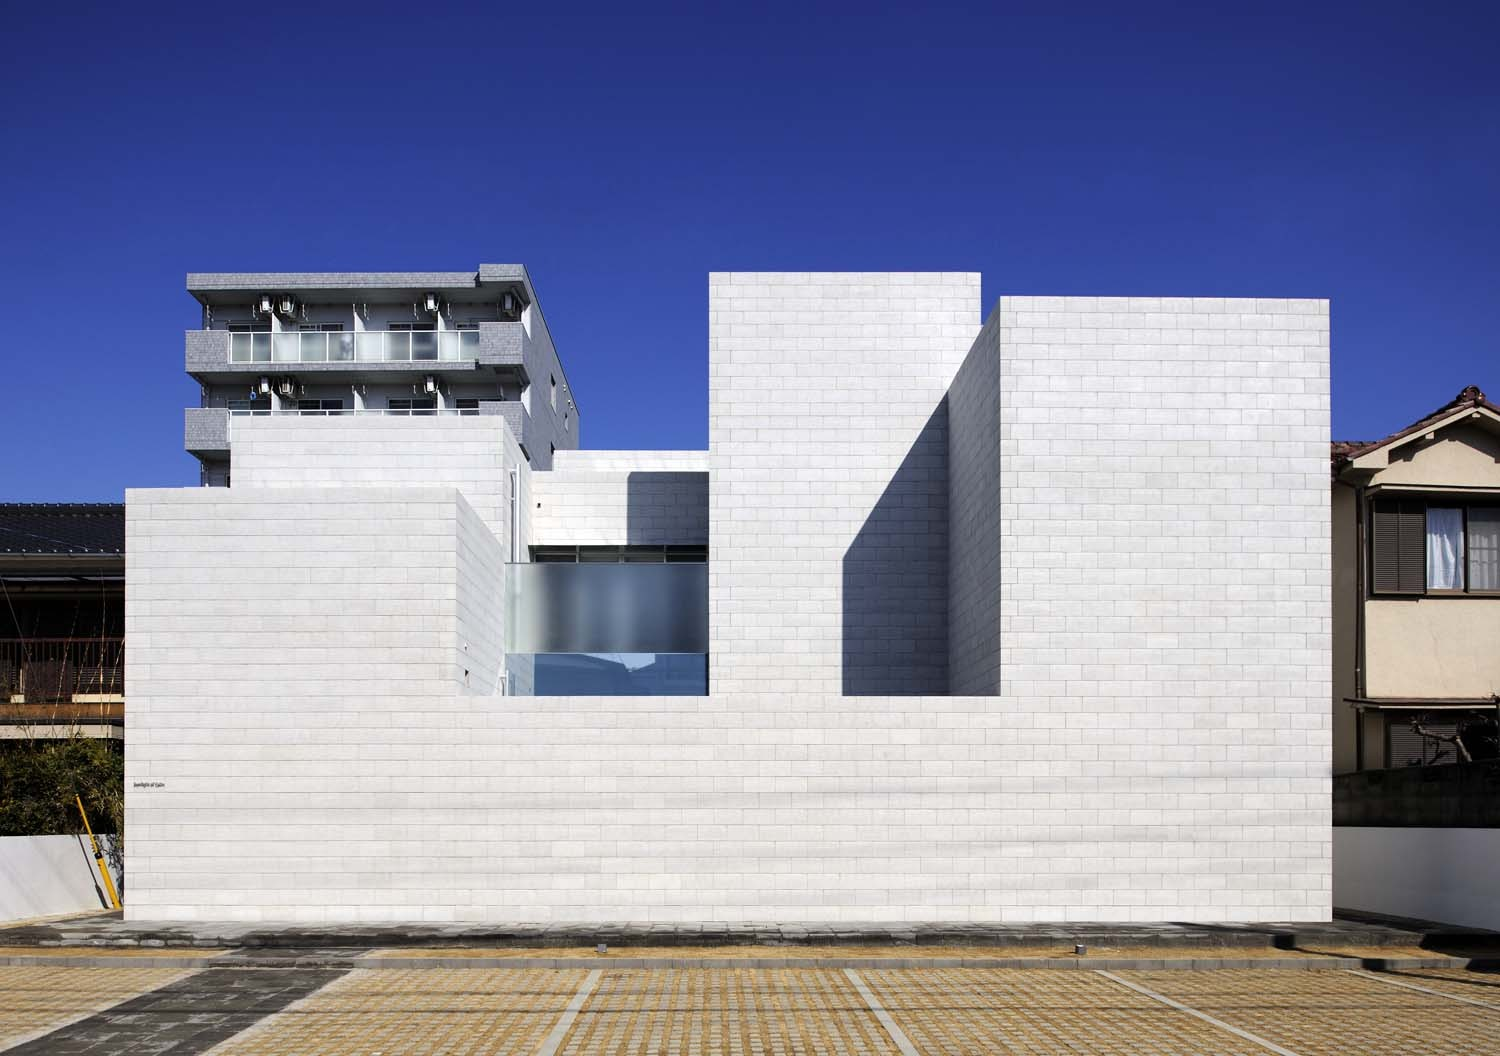 Sunlight of Calm / D.I.G Architects , Courtesy of D.I.G Architects